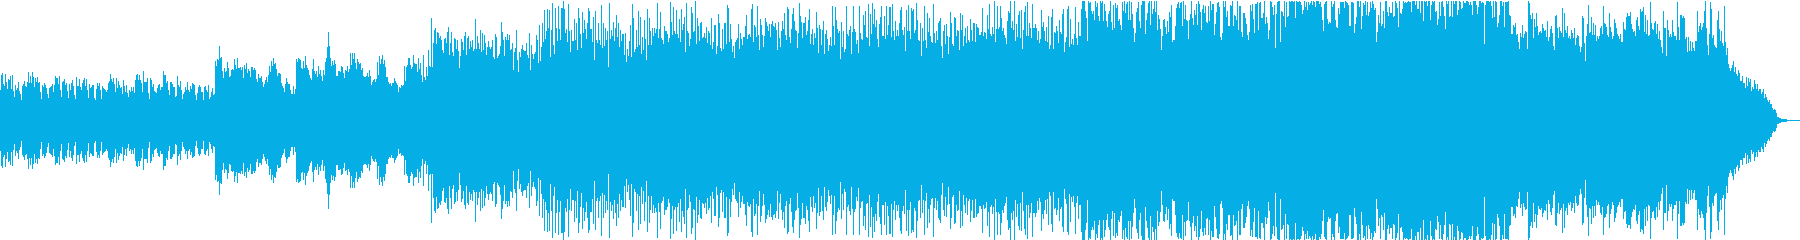 A painful rock that slowly rises's reproduced waveform